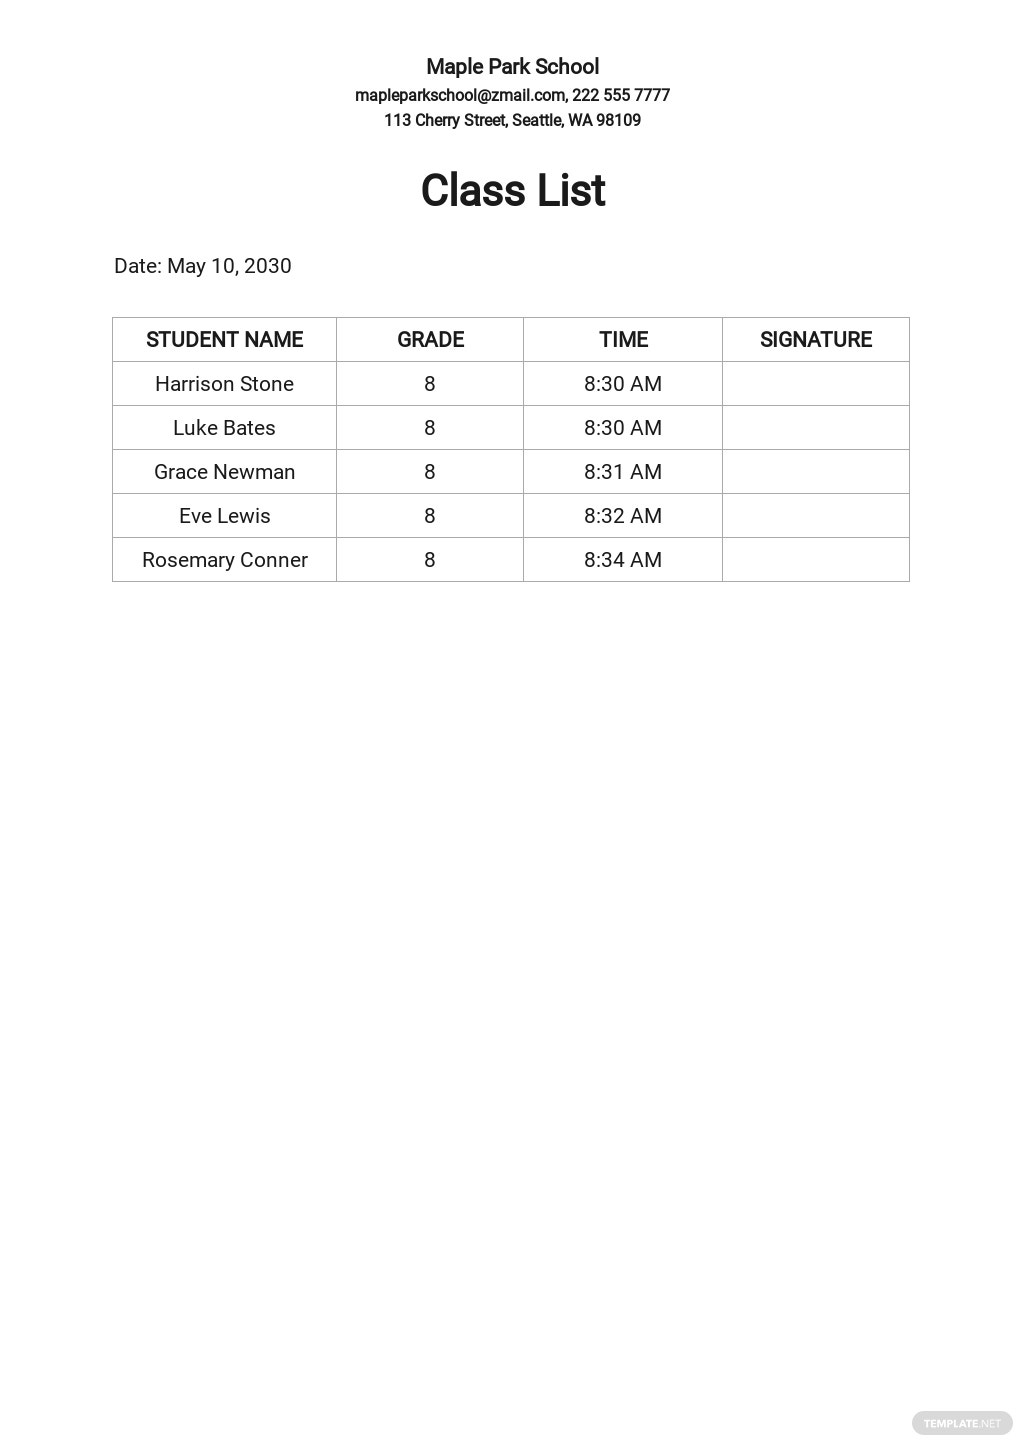 Class List Template For 30 Students.jpe